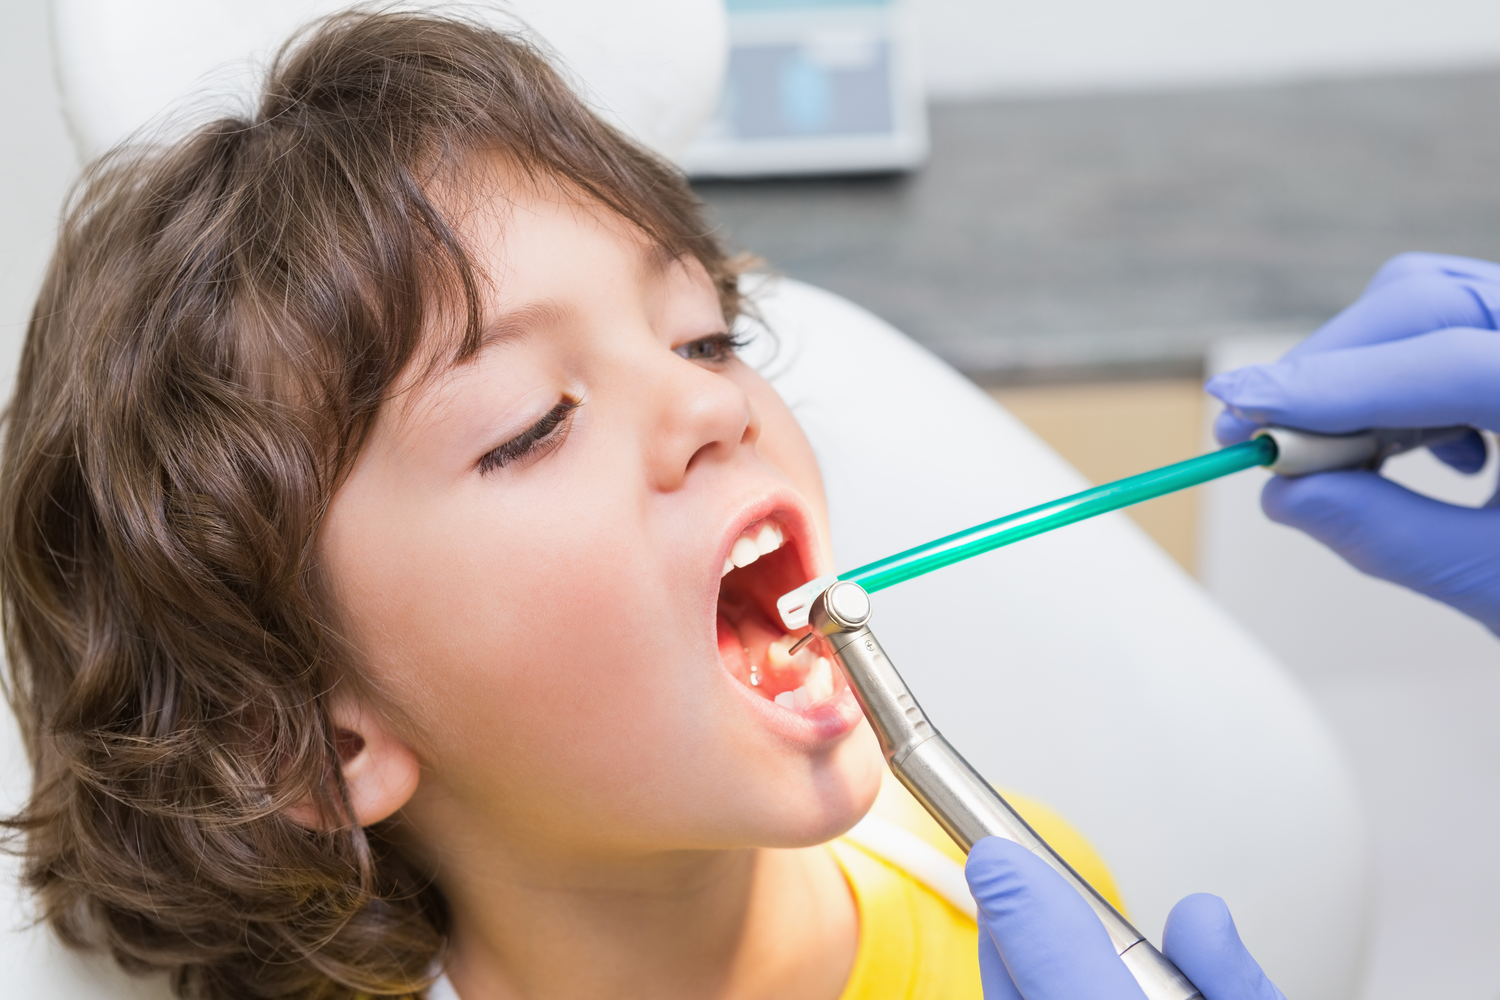 Why Are Routine Pediatric Dental Exams Important?